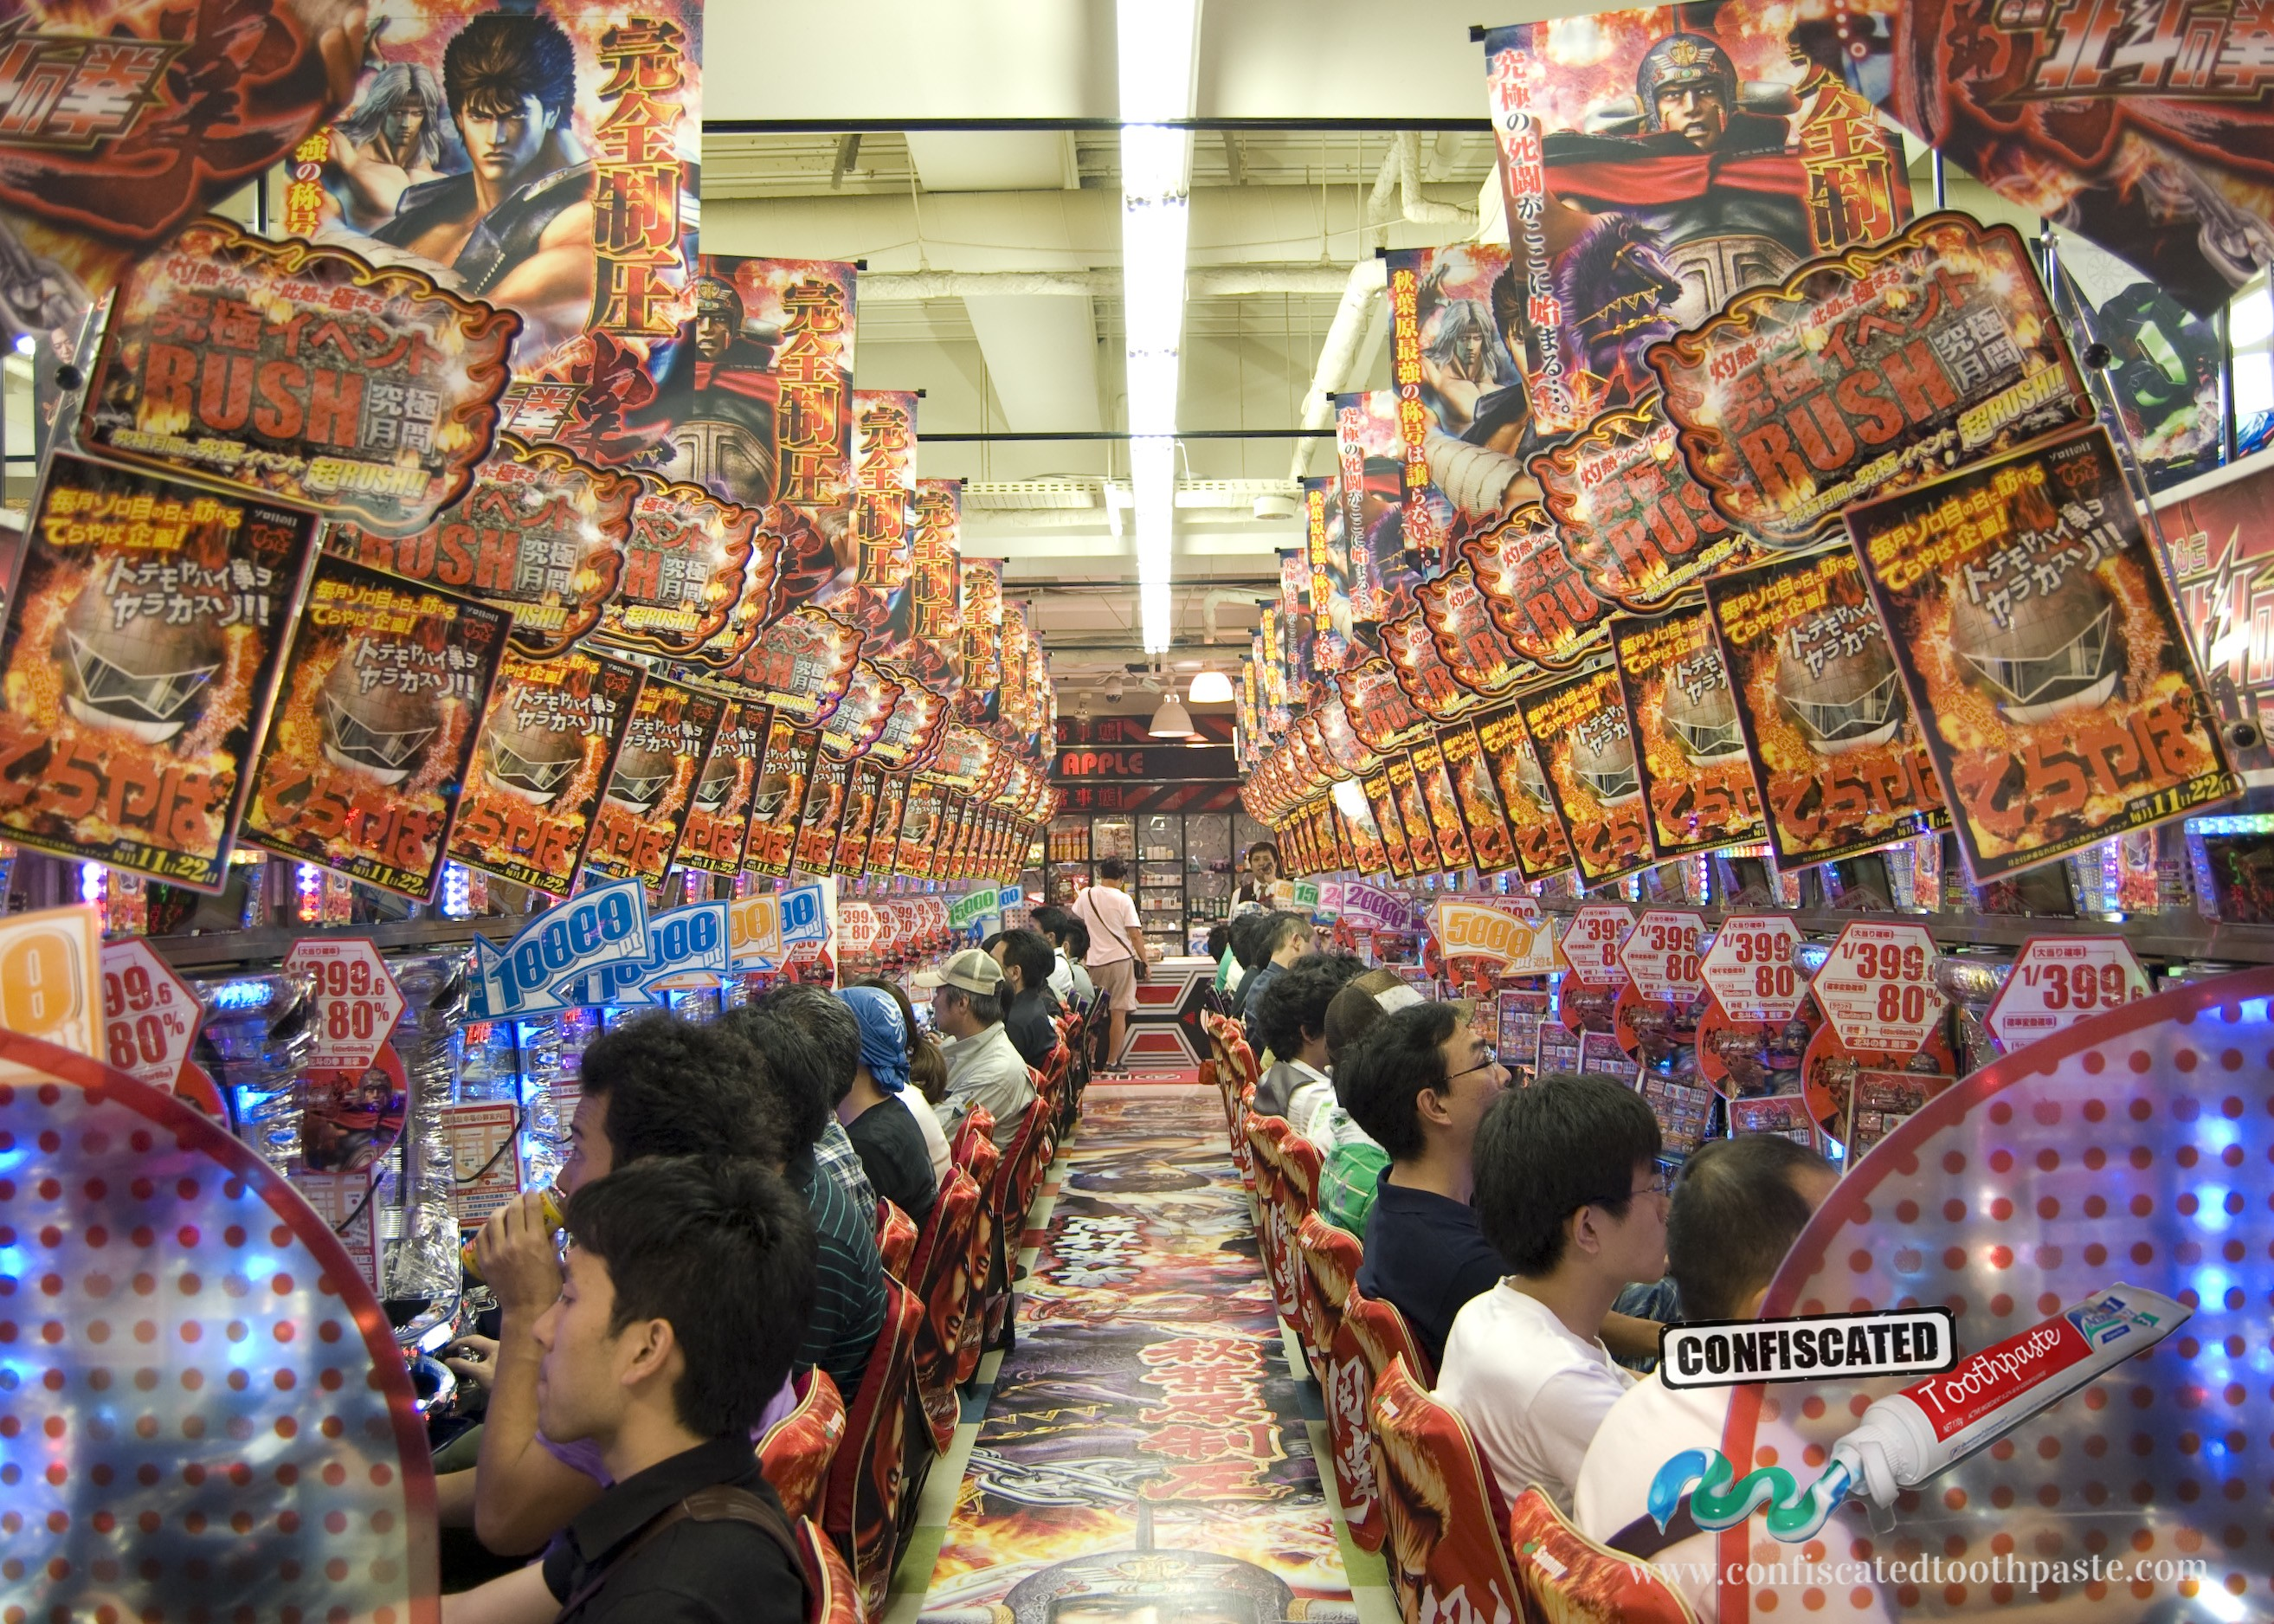 Pachinko parlour with rows of machines with colourful lights and gaudy music, Japan